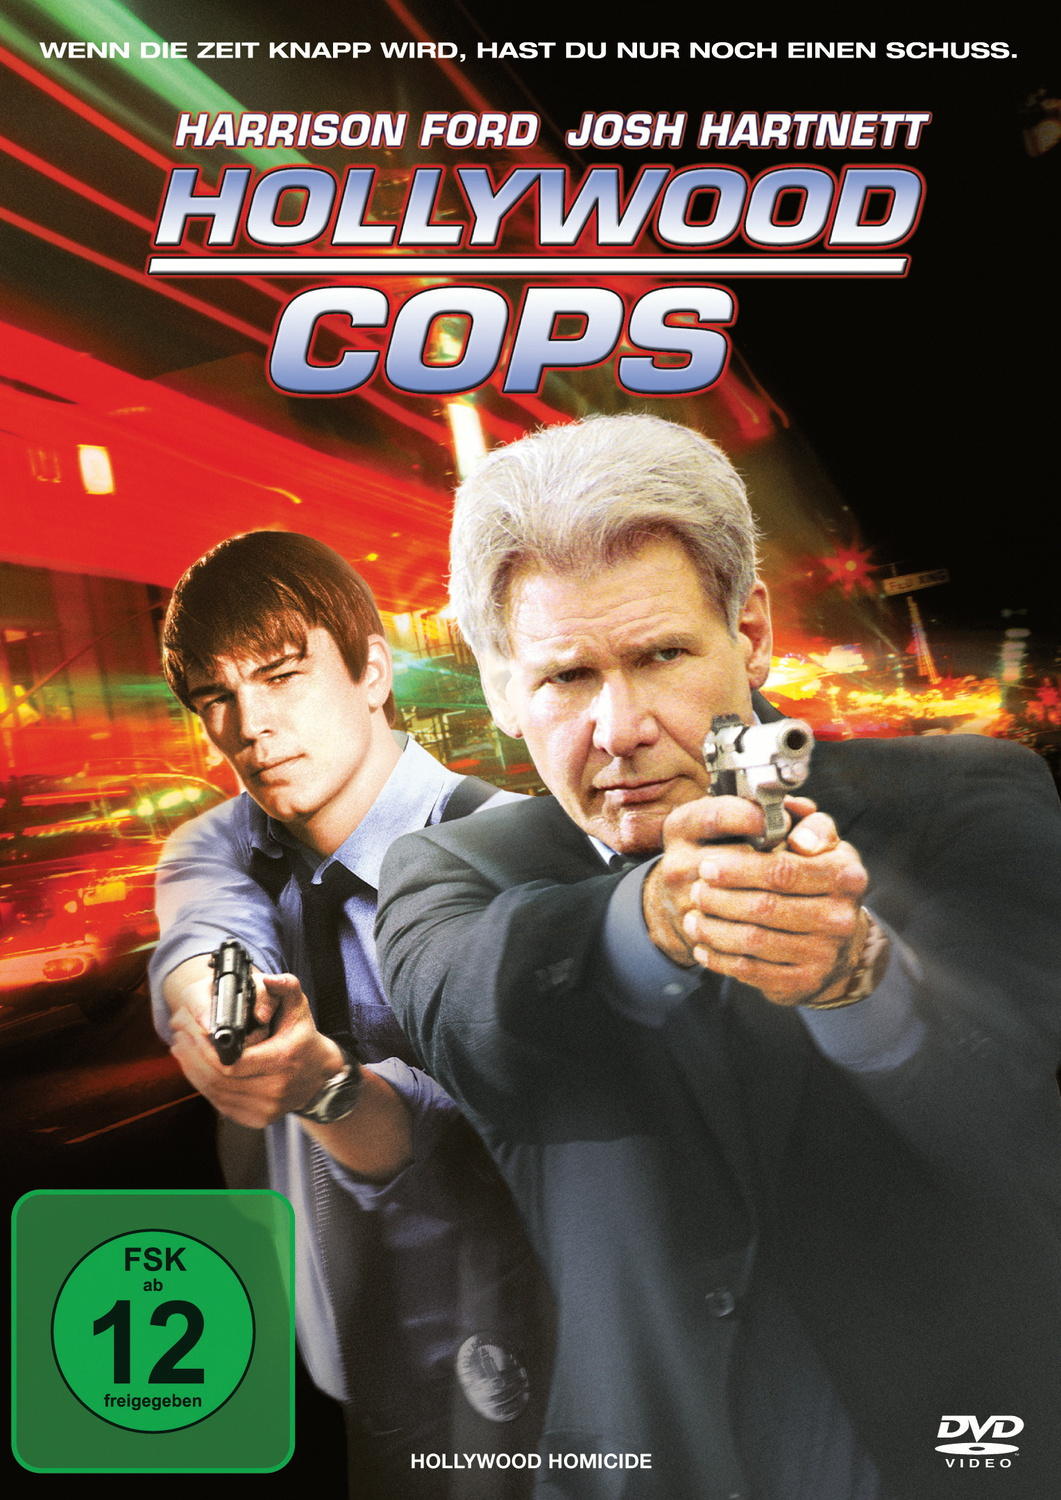 Hollywood Cops - Harrison Ford